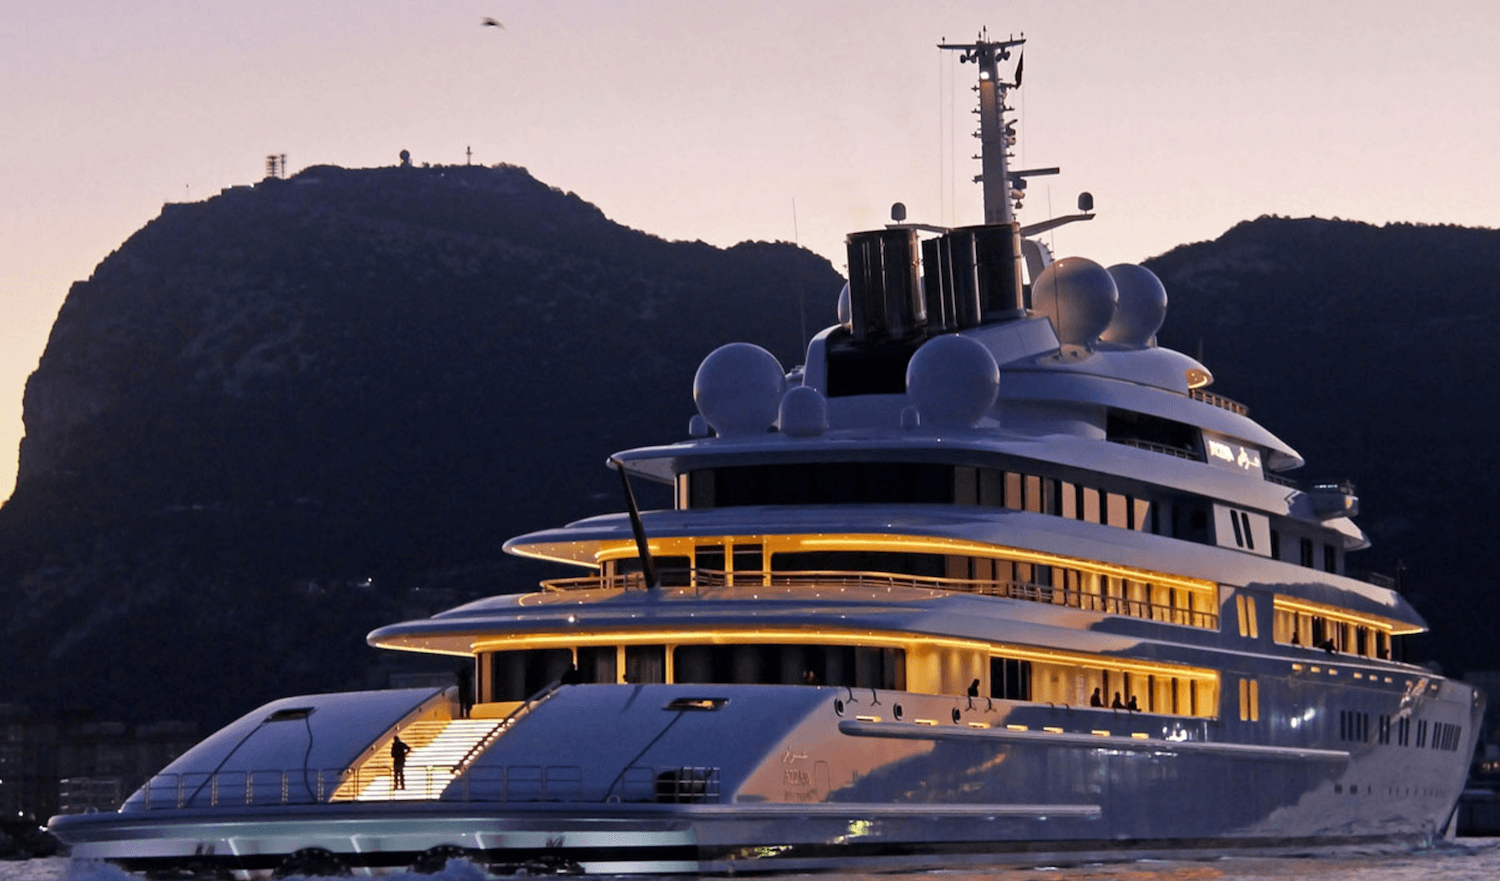 Azzam Is A 590 Ft Mega Yacht Price 650 Million It Has 18 Cabins